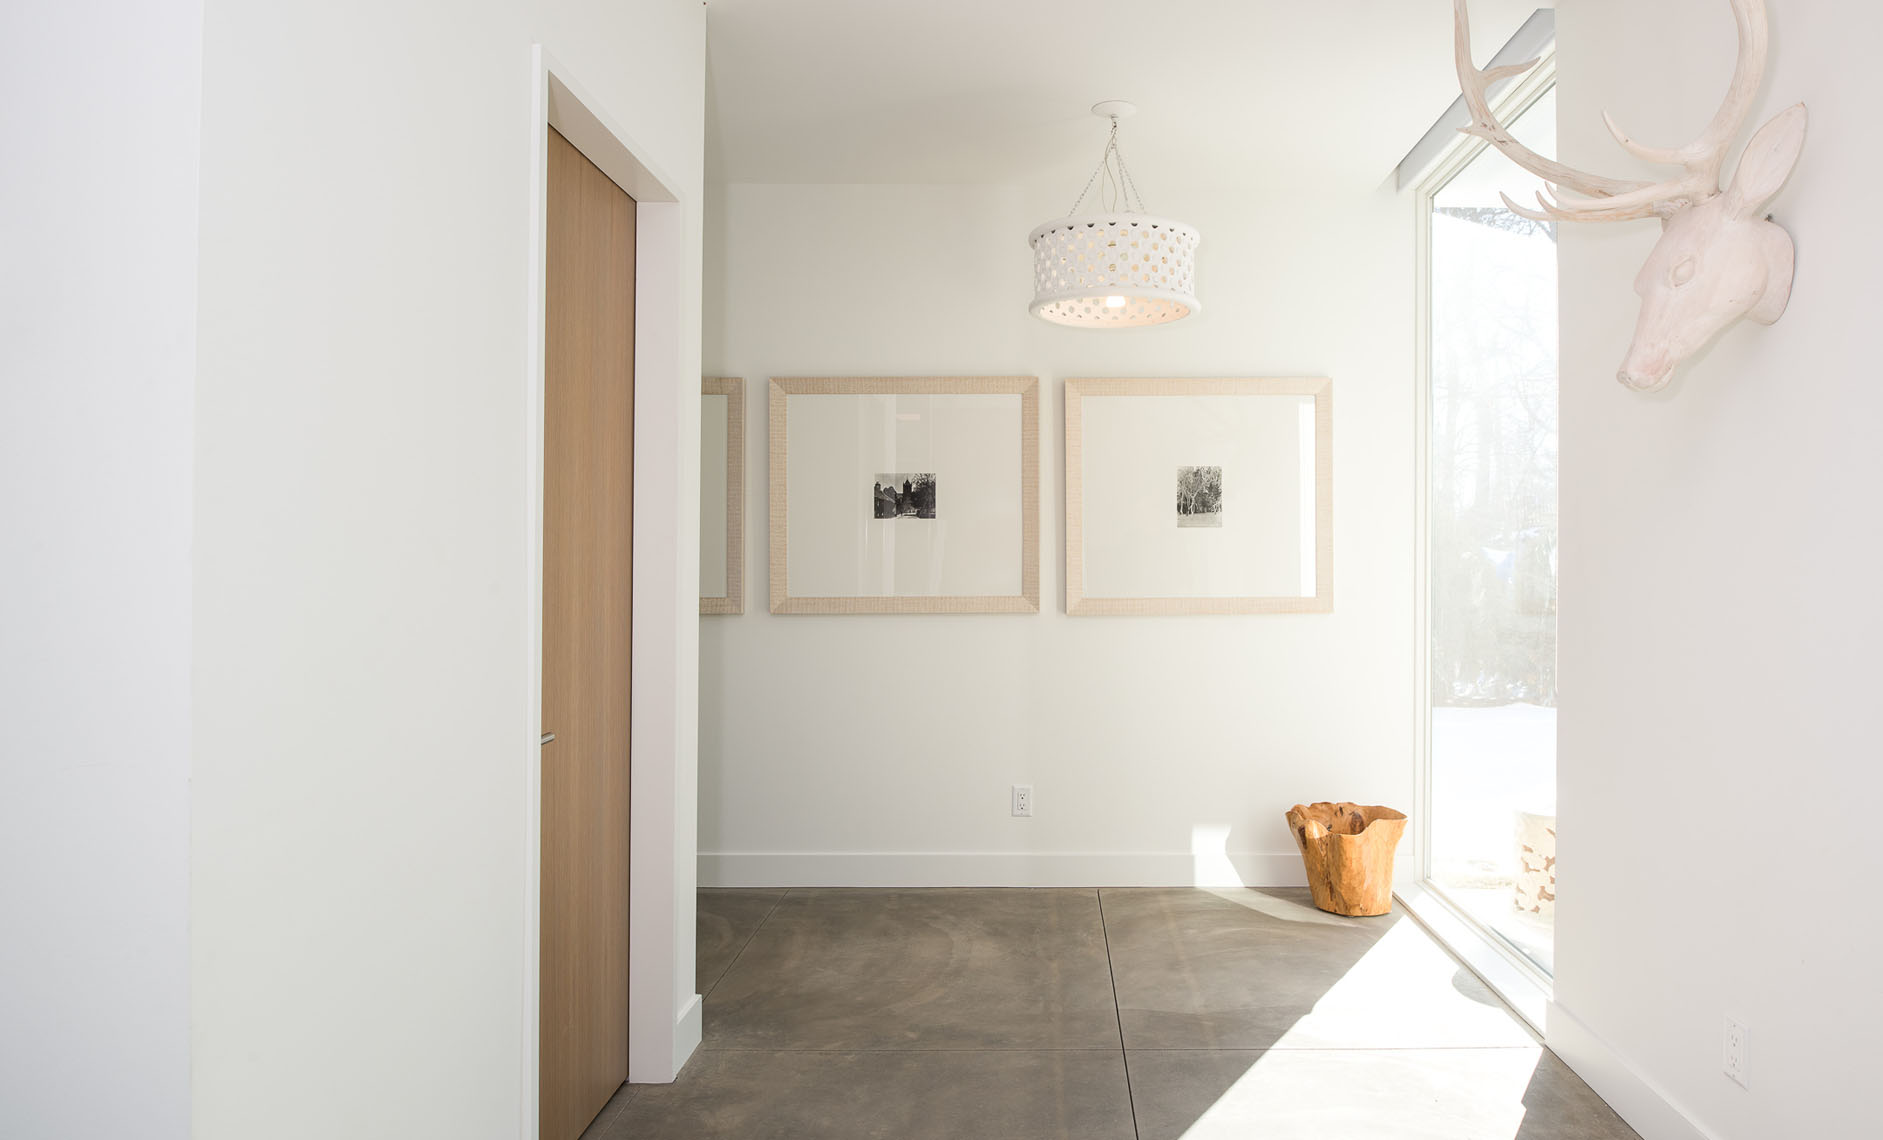 Hallway with a concrete floor and white walls